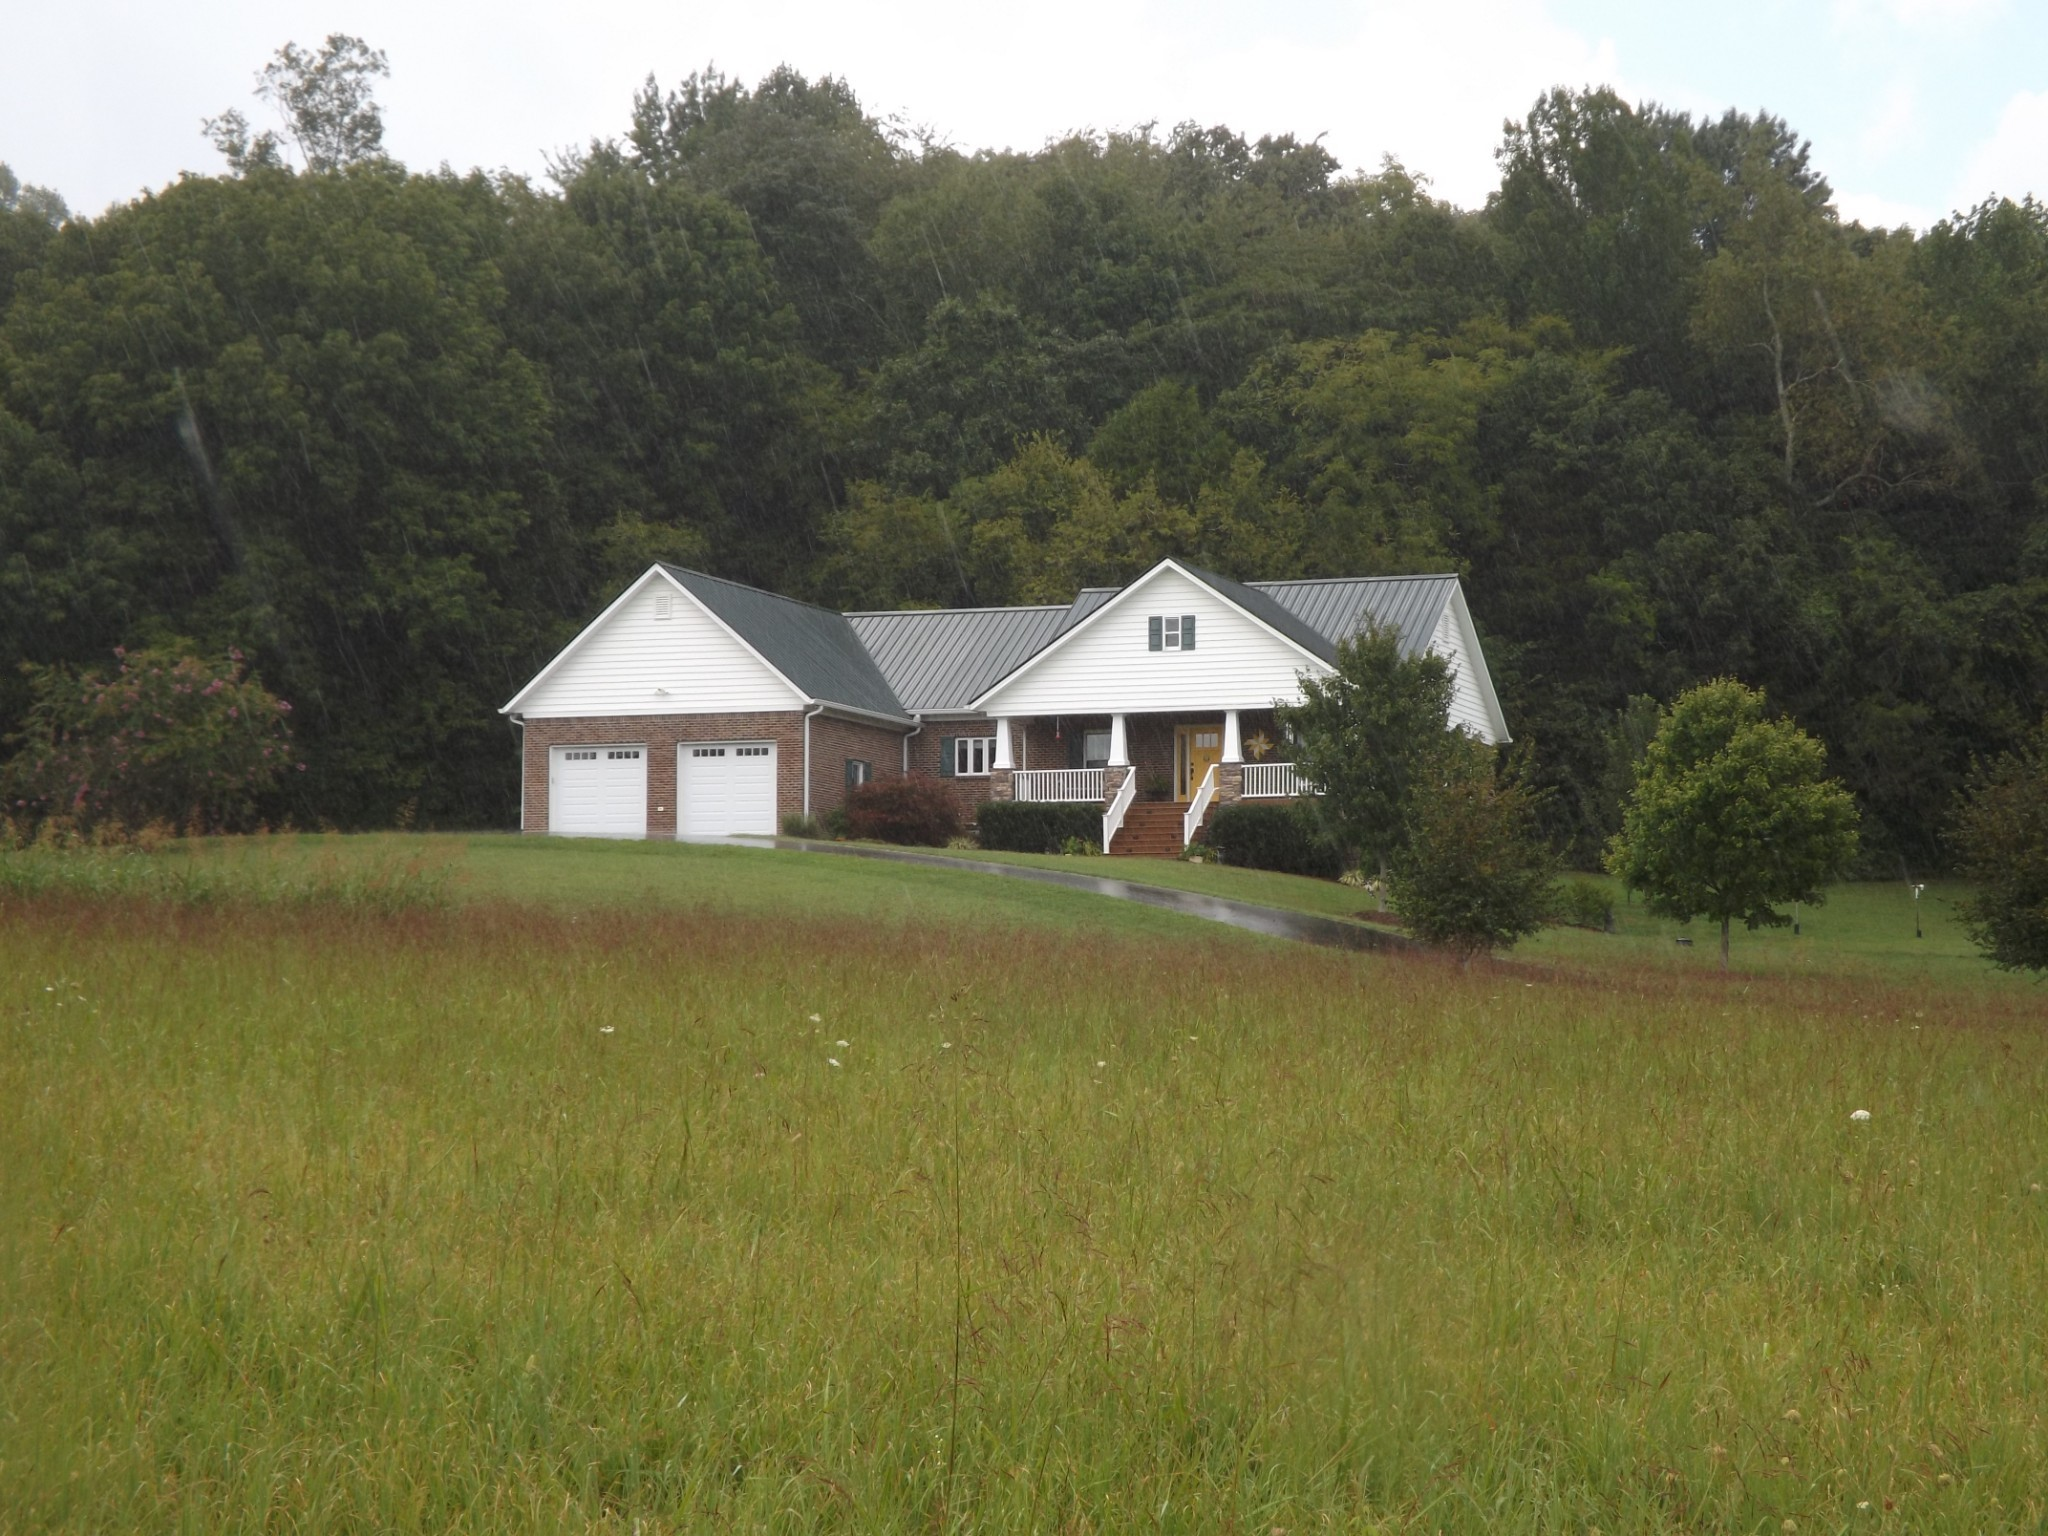 1155 Shady Ln Property Photo - Pulaski, TN real estate listing